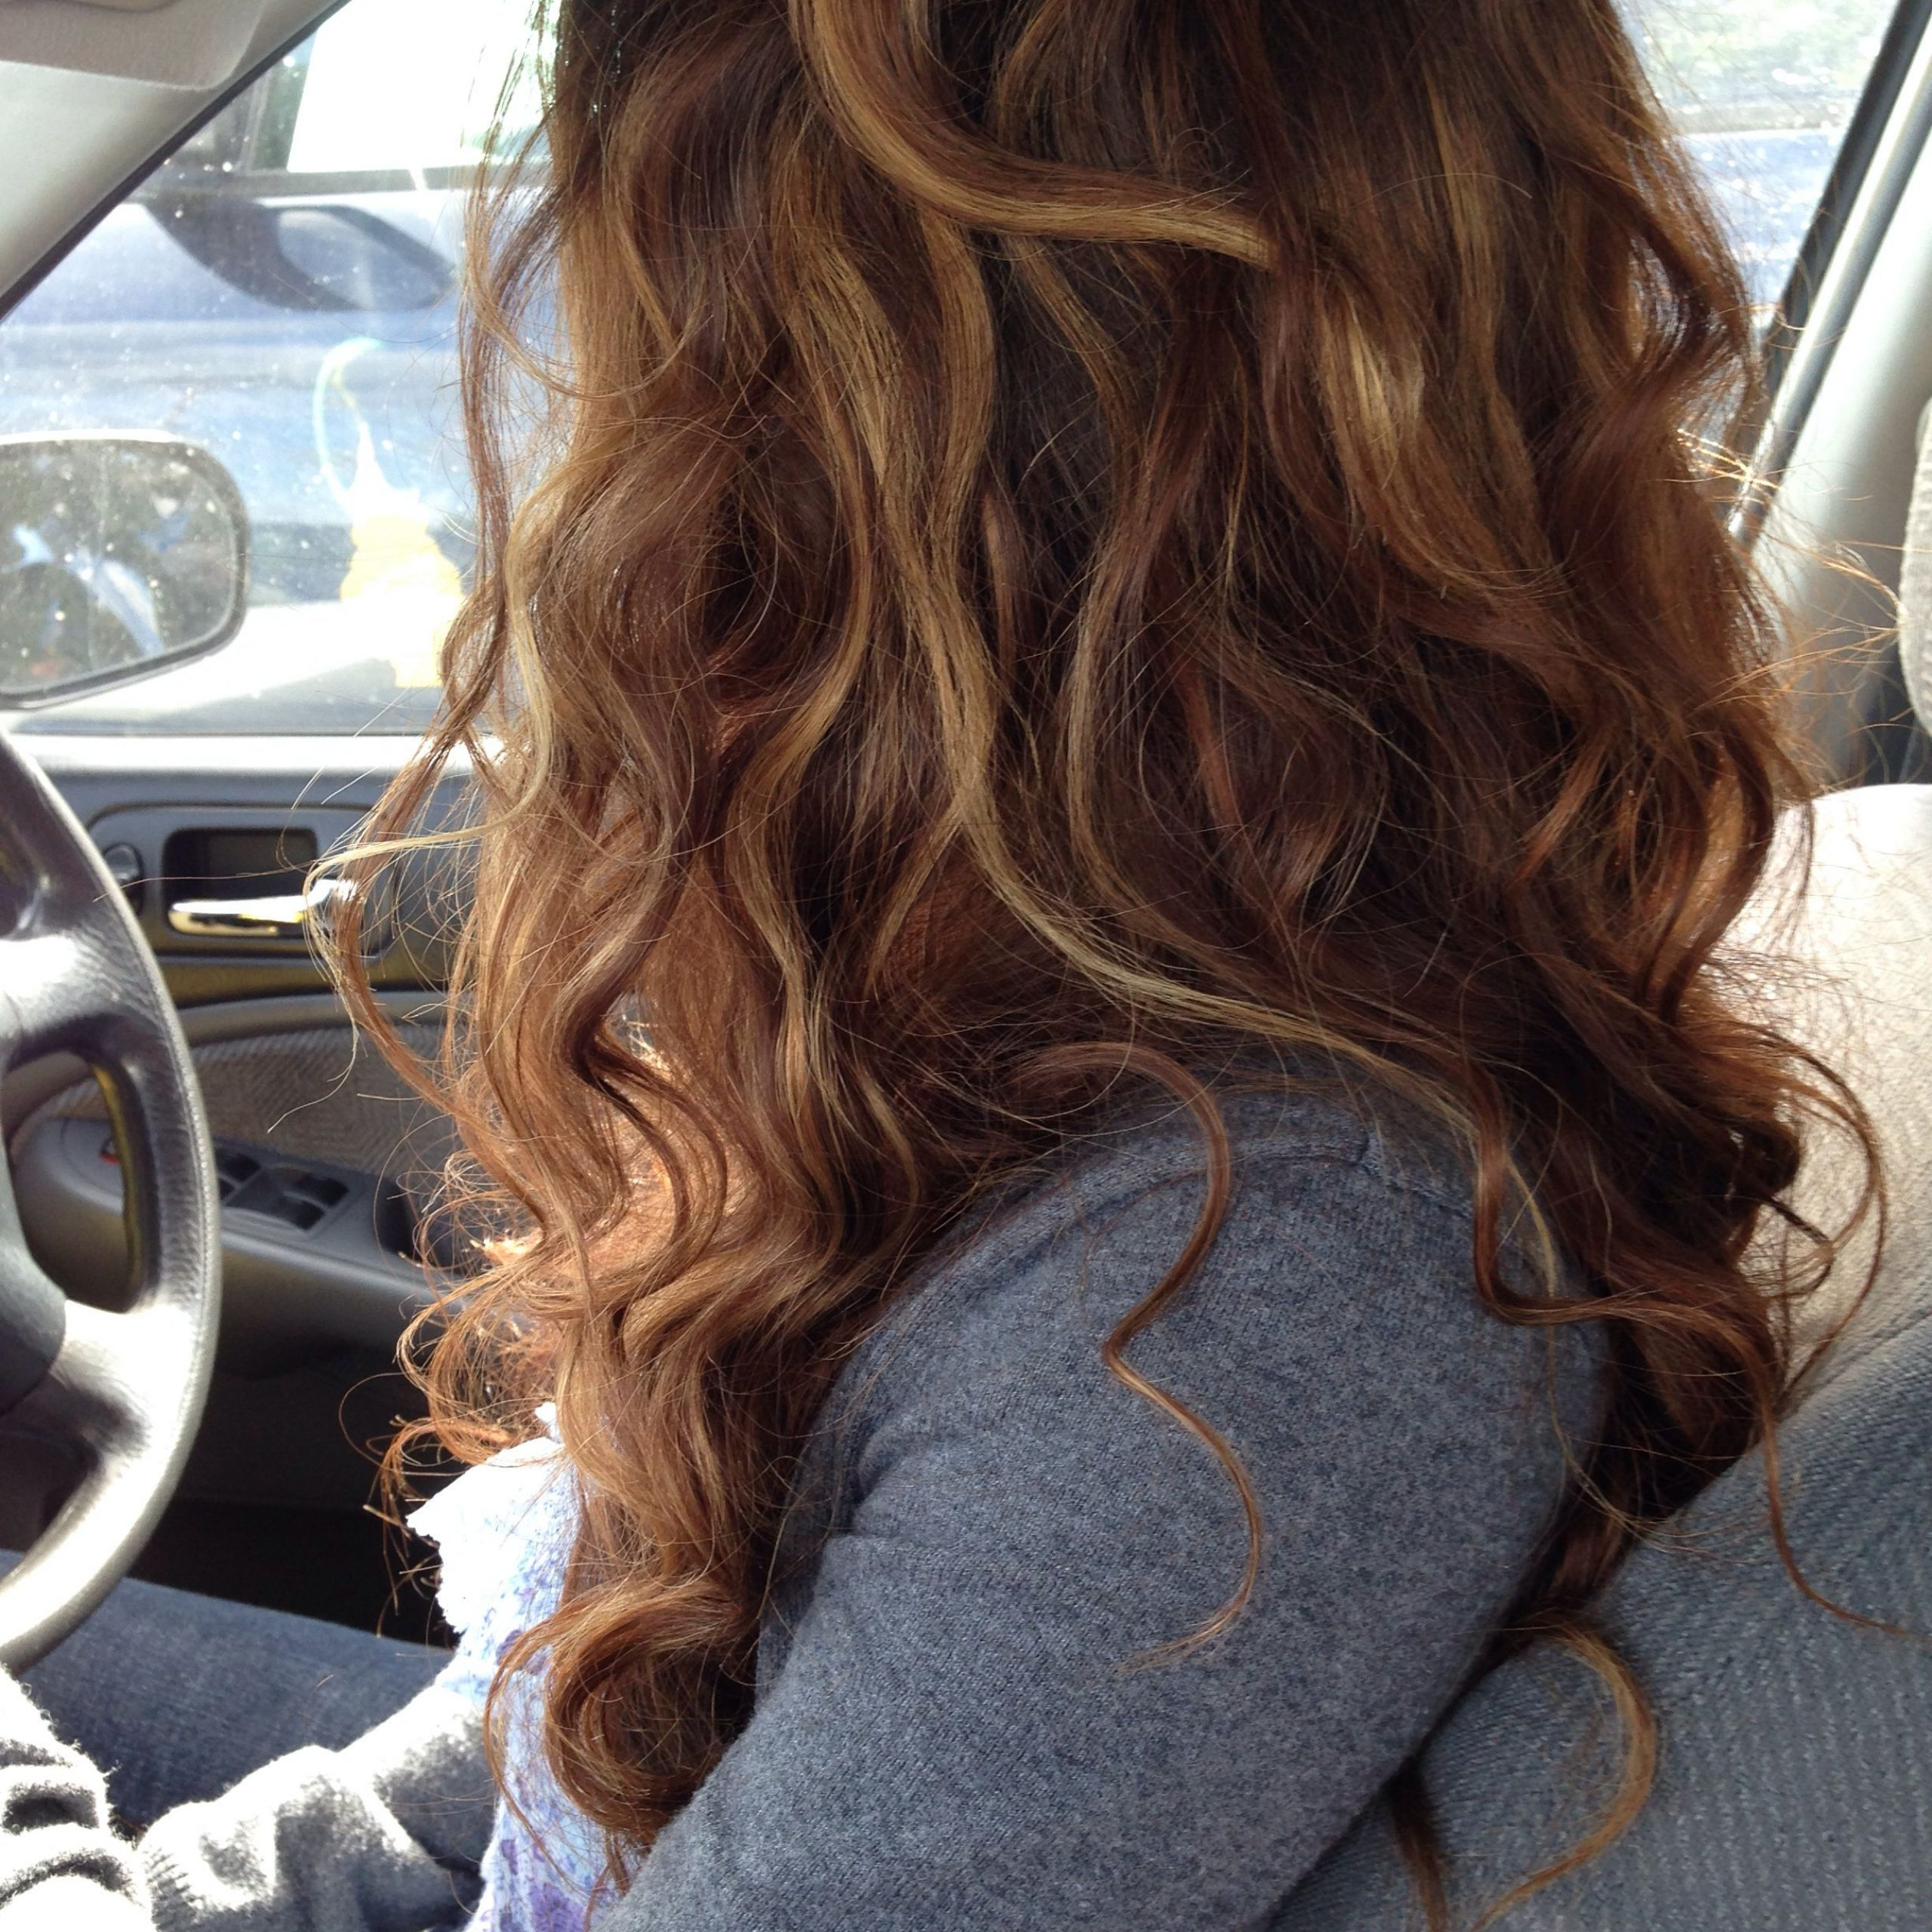 Featured Photo of Natural Curls Hairstyles With Caramel Highlights